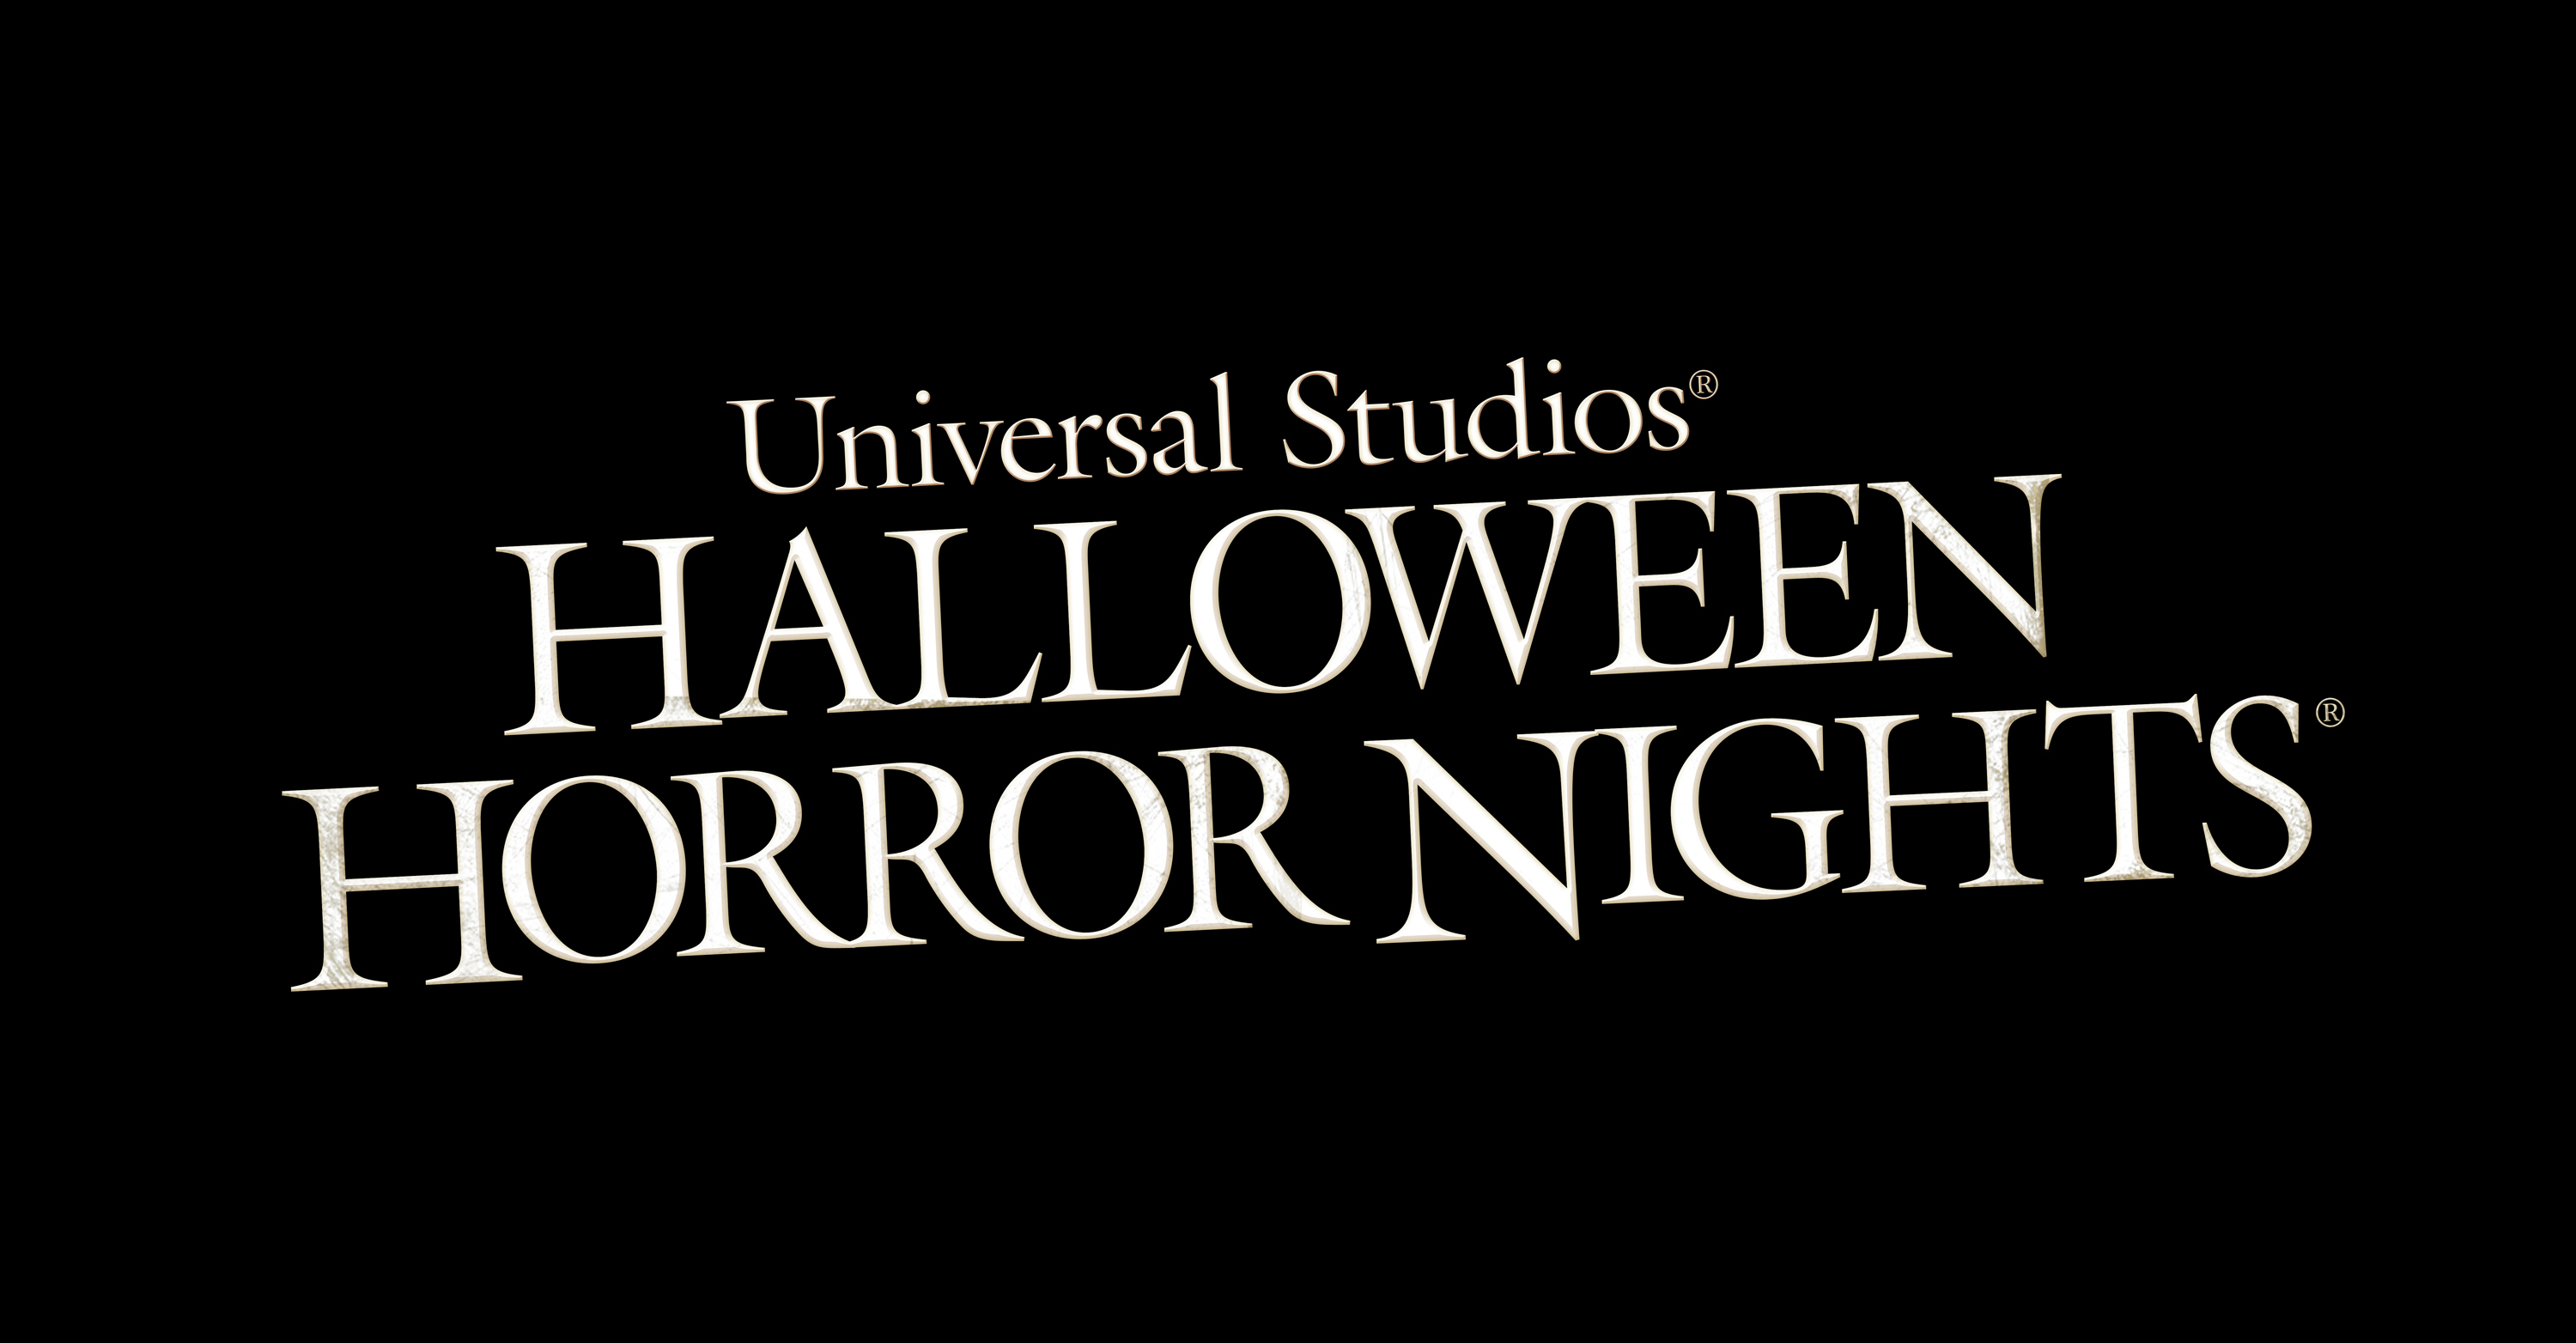 Halloween Horror Nights at Universal Studios Hollywood offering ...